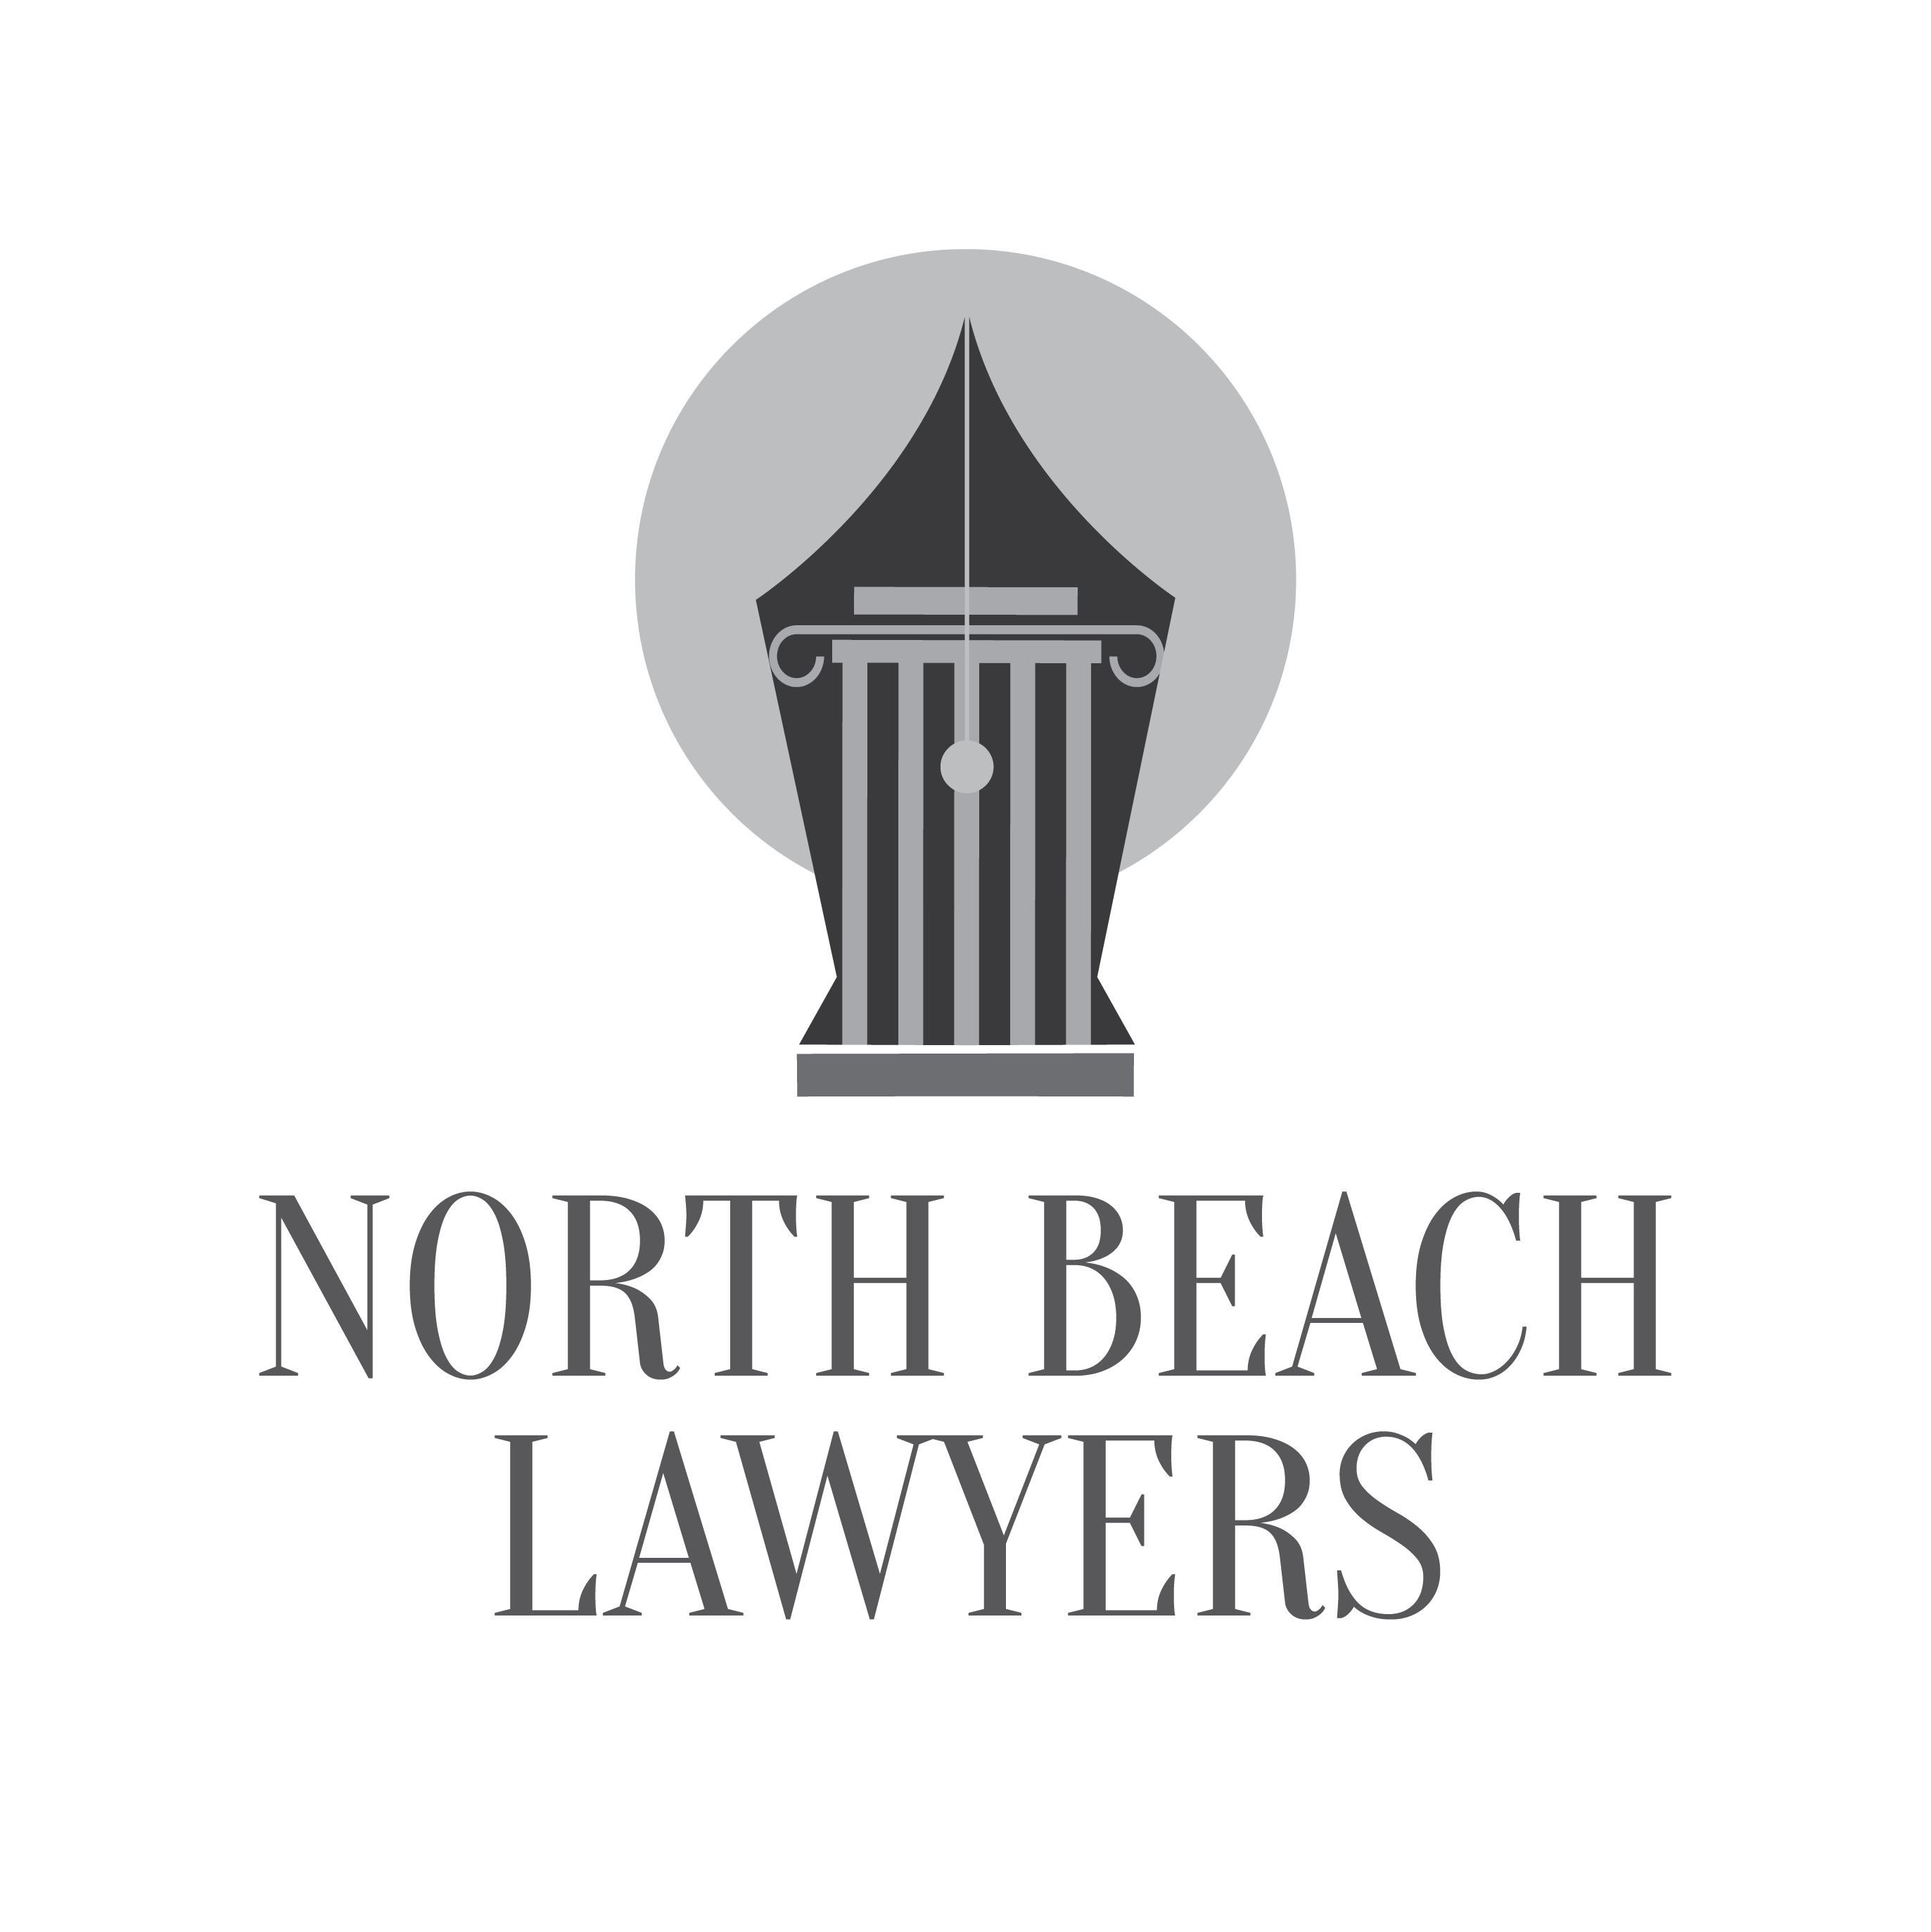 North Beach Lawyers